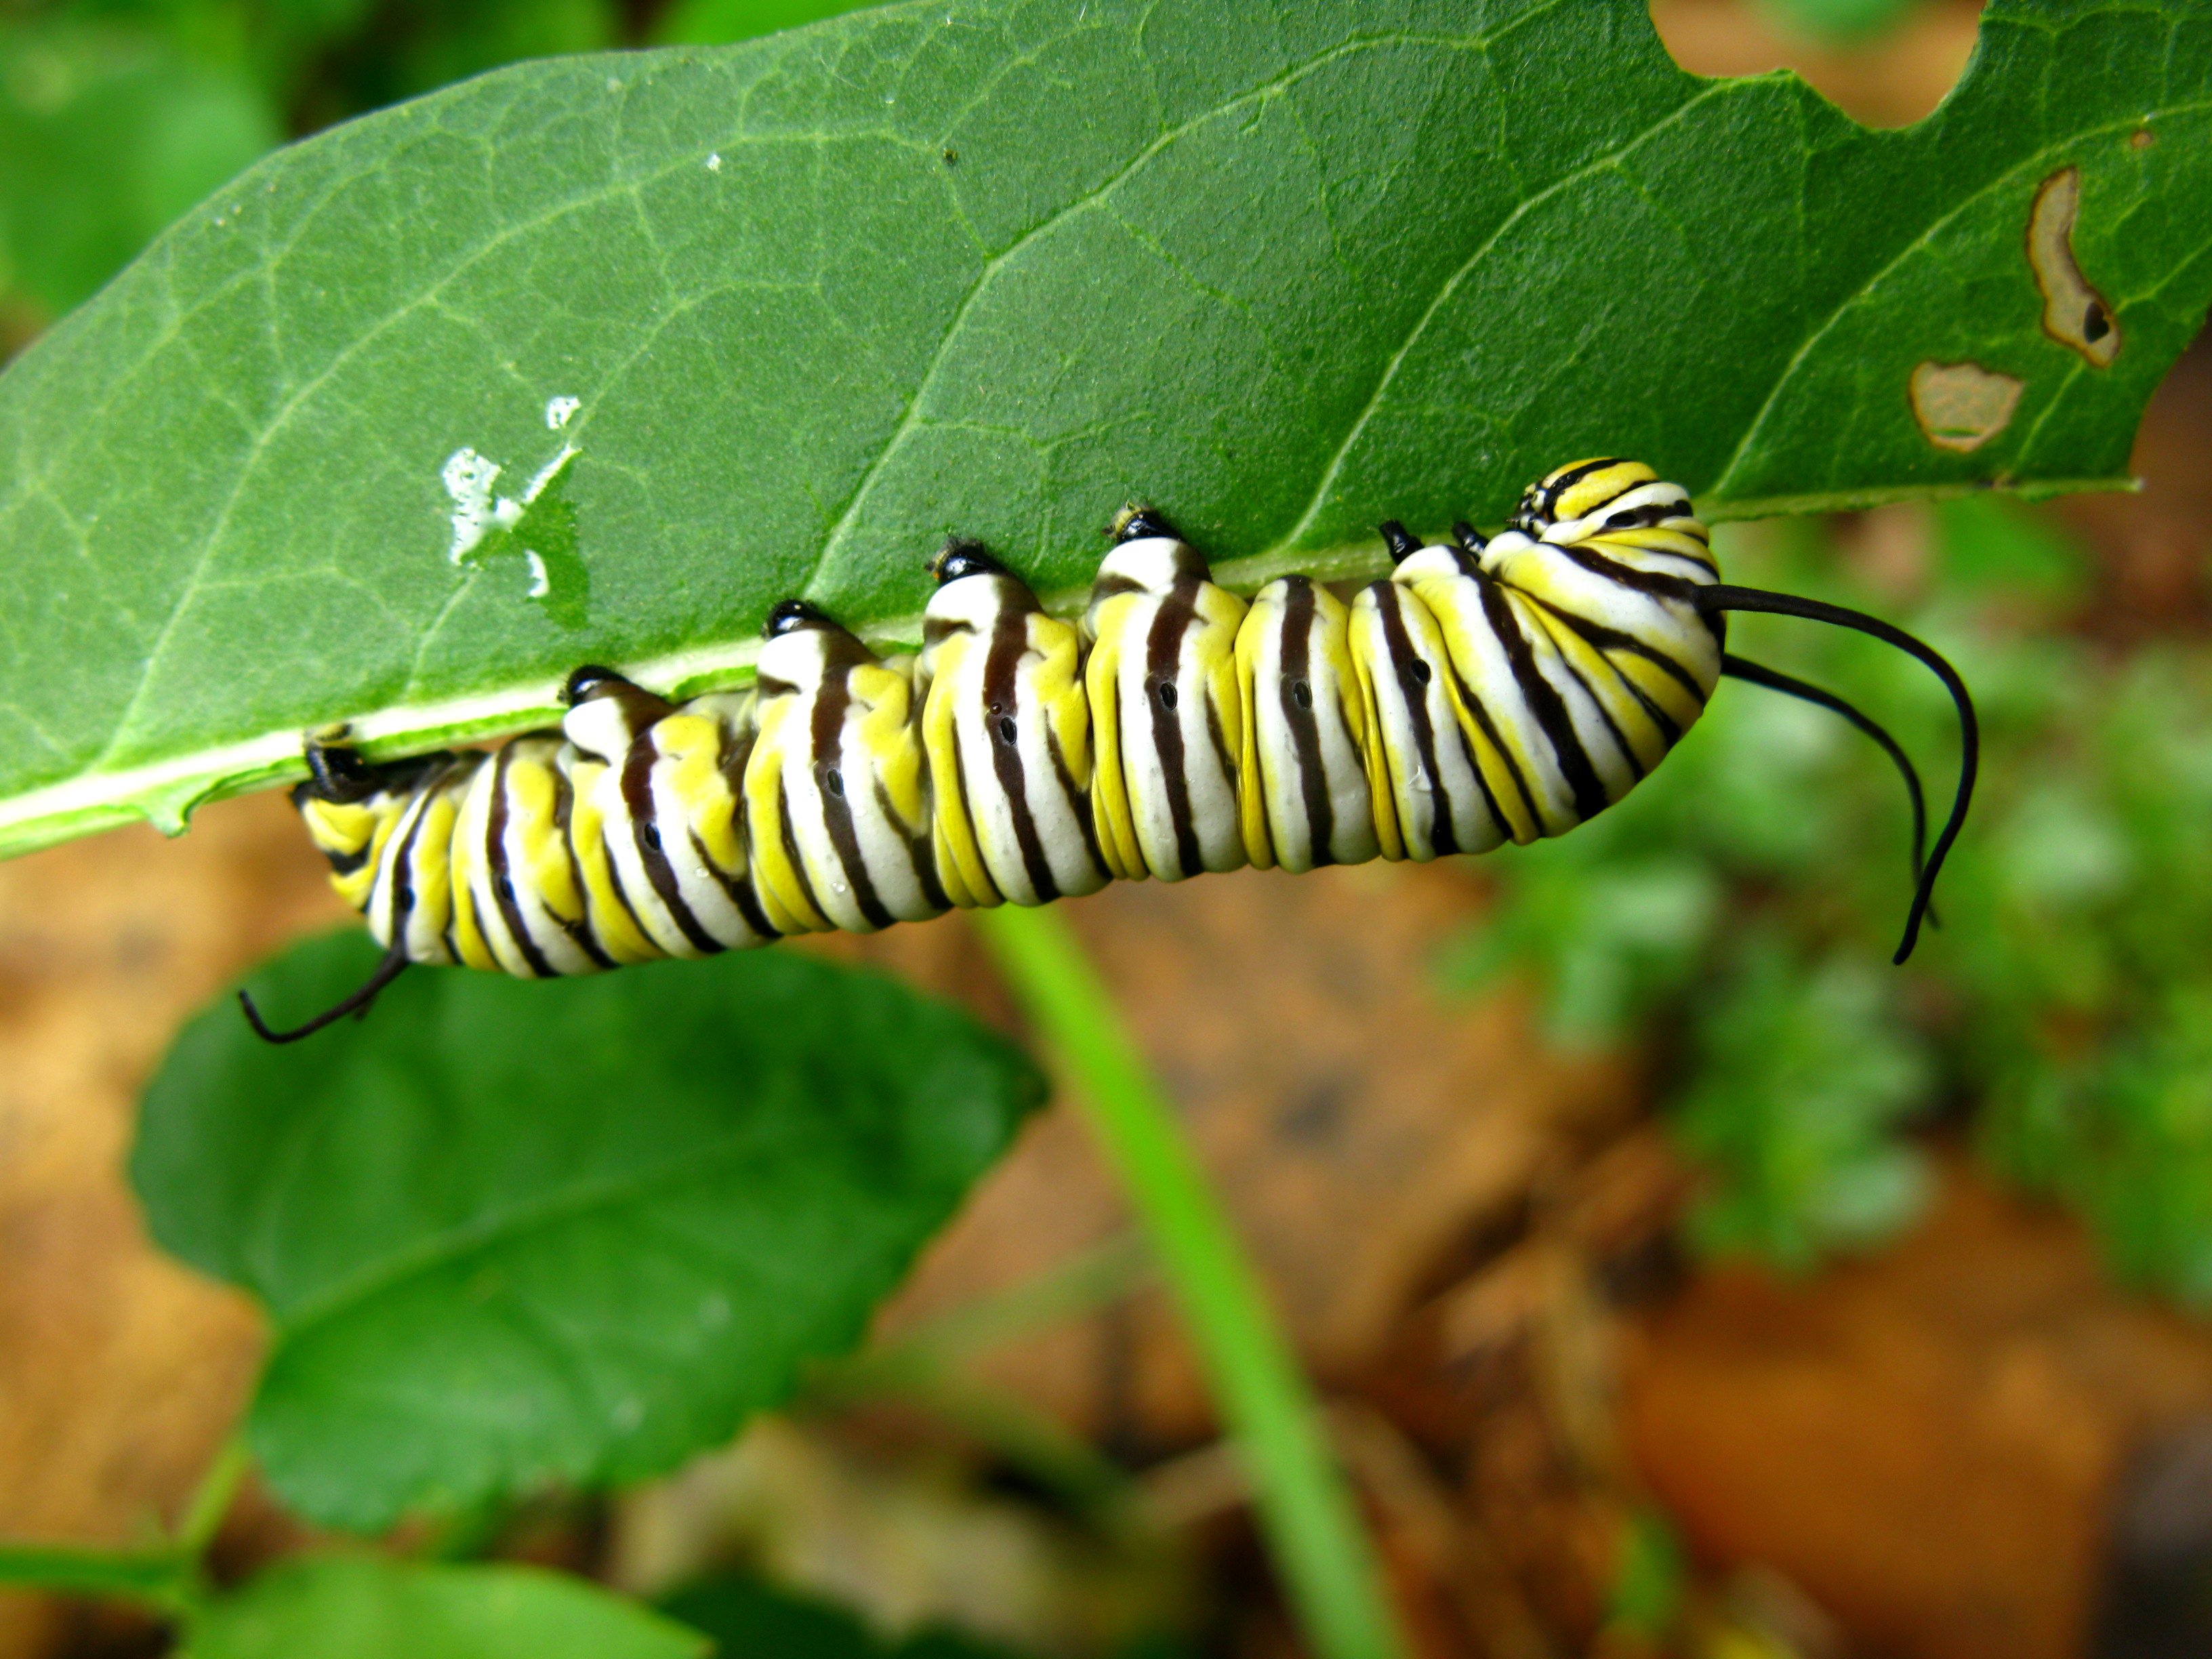 how to get rid of caterpillars eating my plants